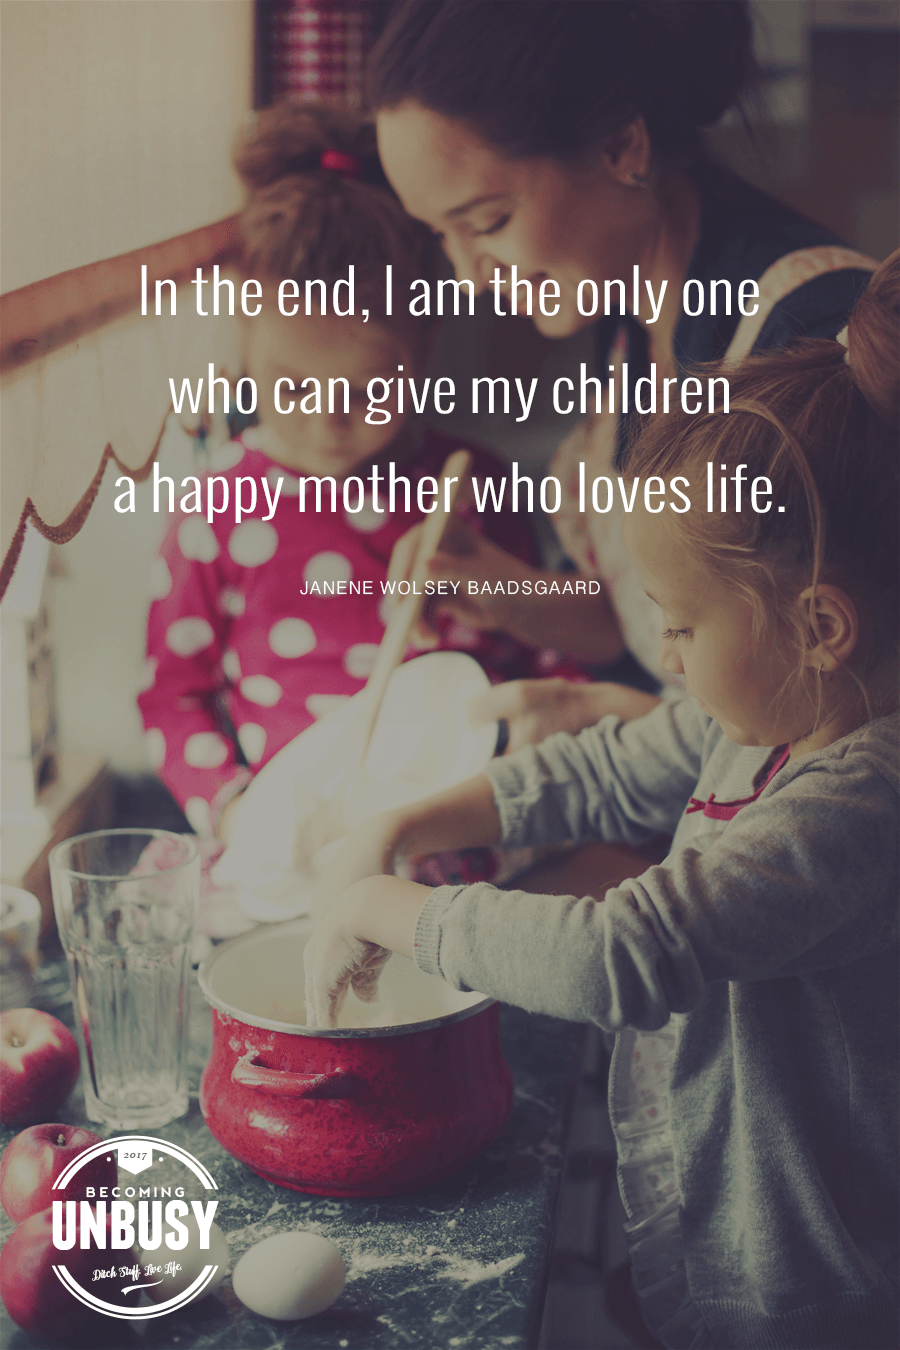 In the end, I am the only one who can give my children a happy